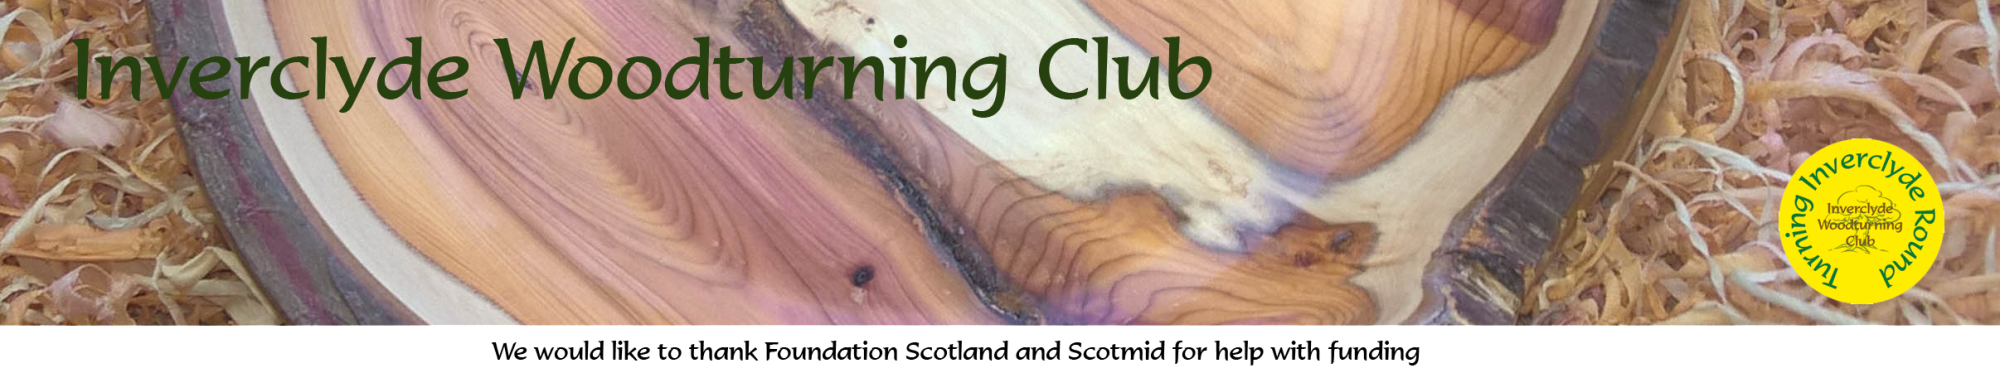 Inverclyde Woodturning Club